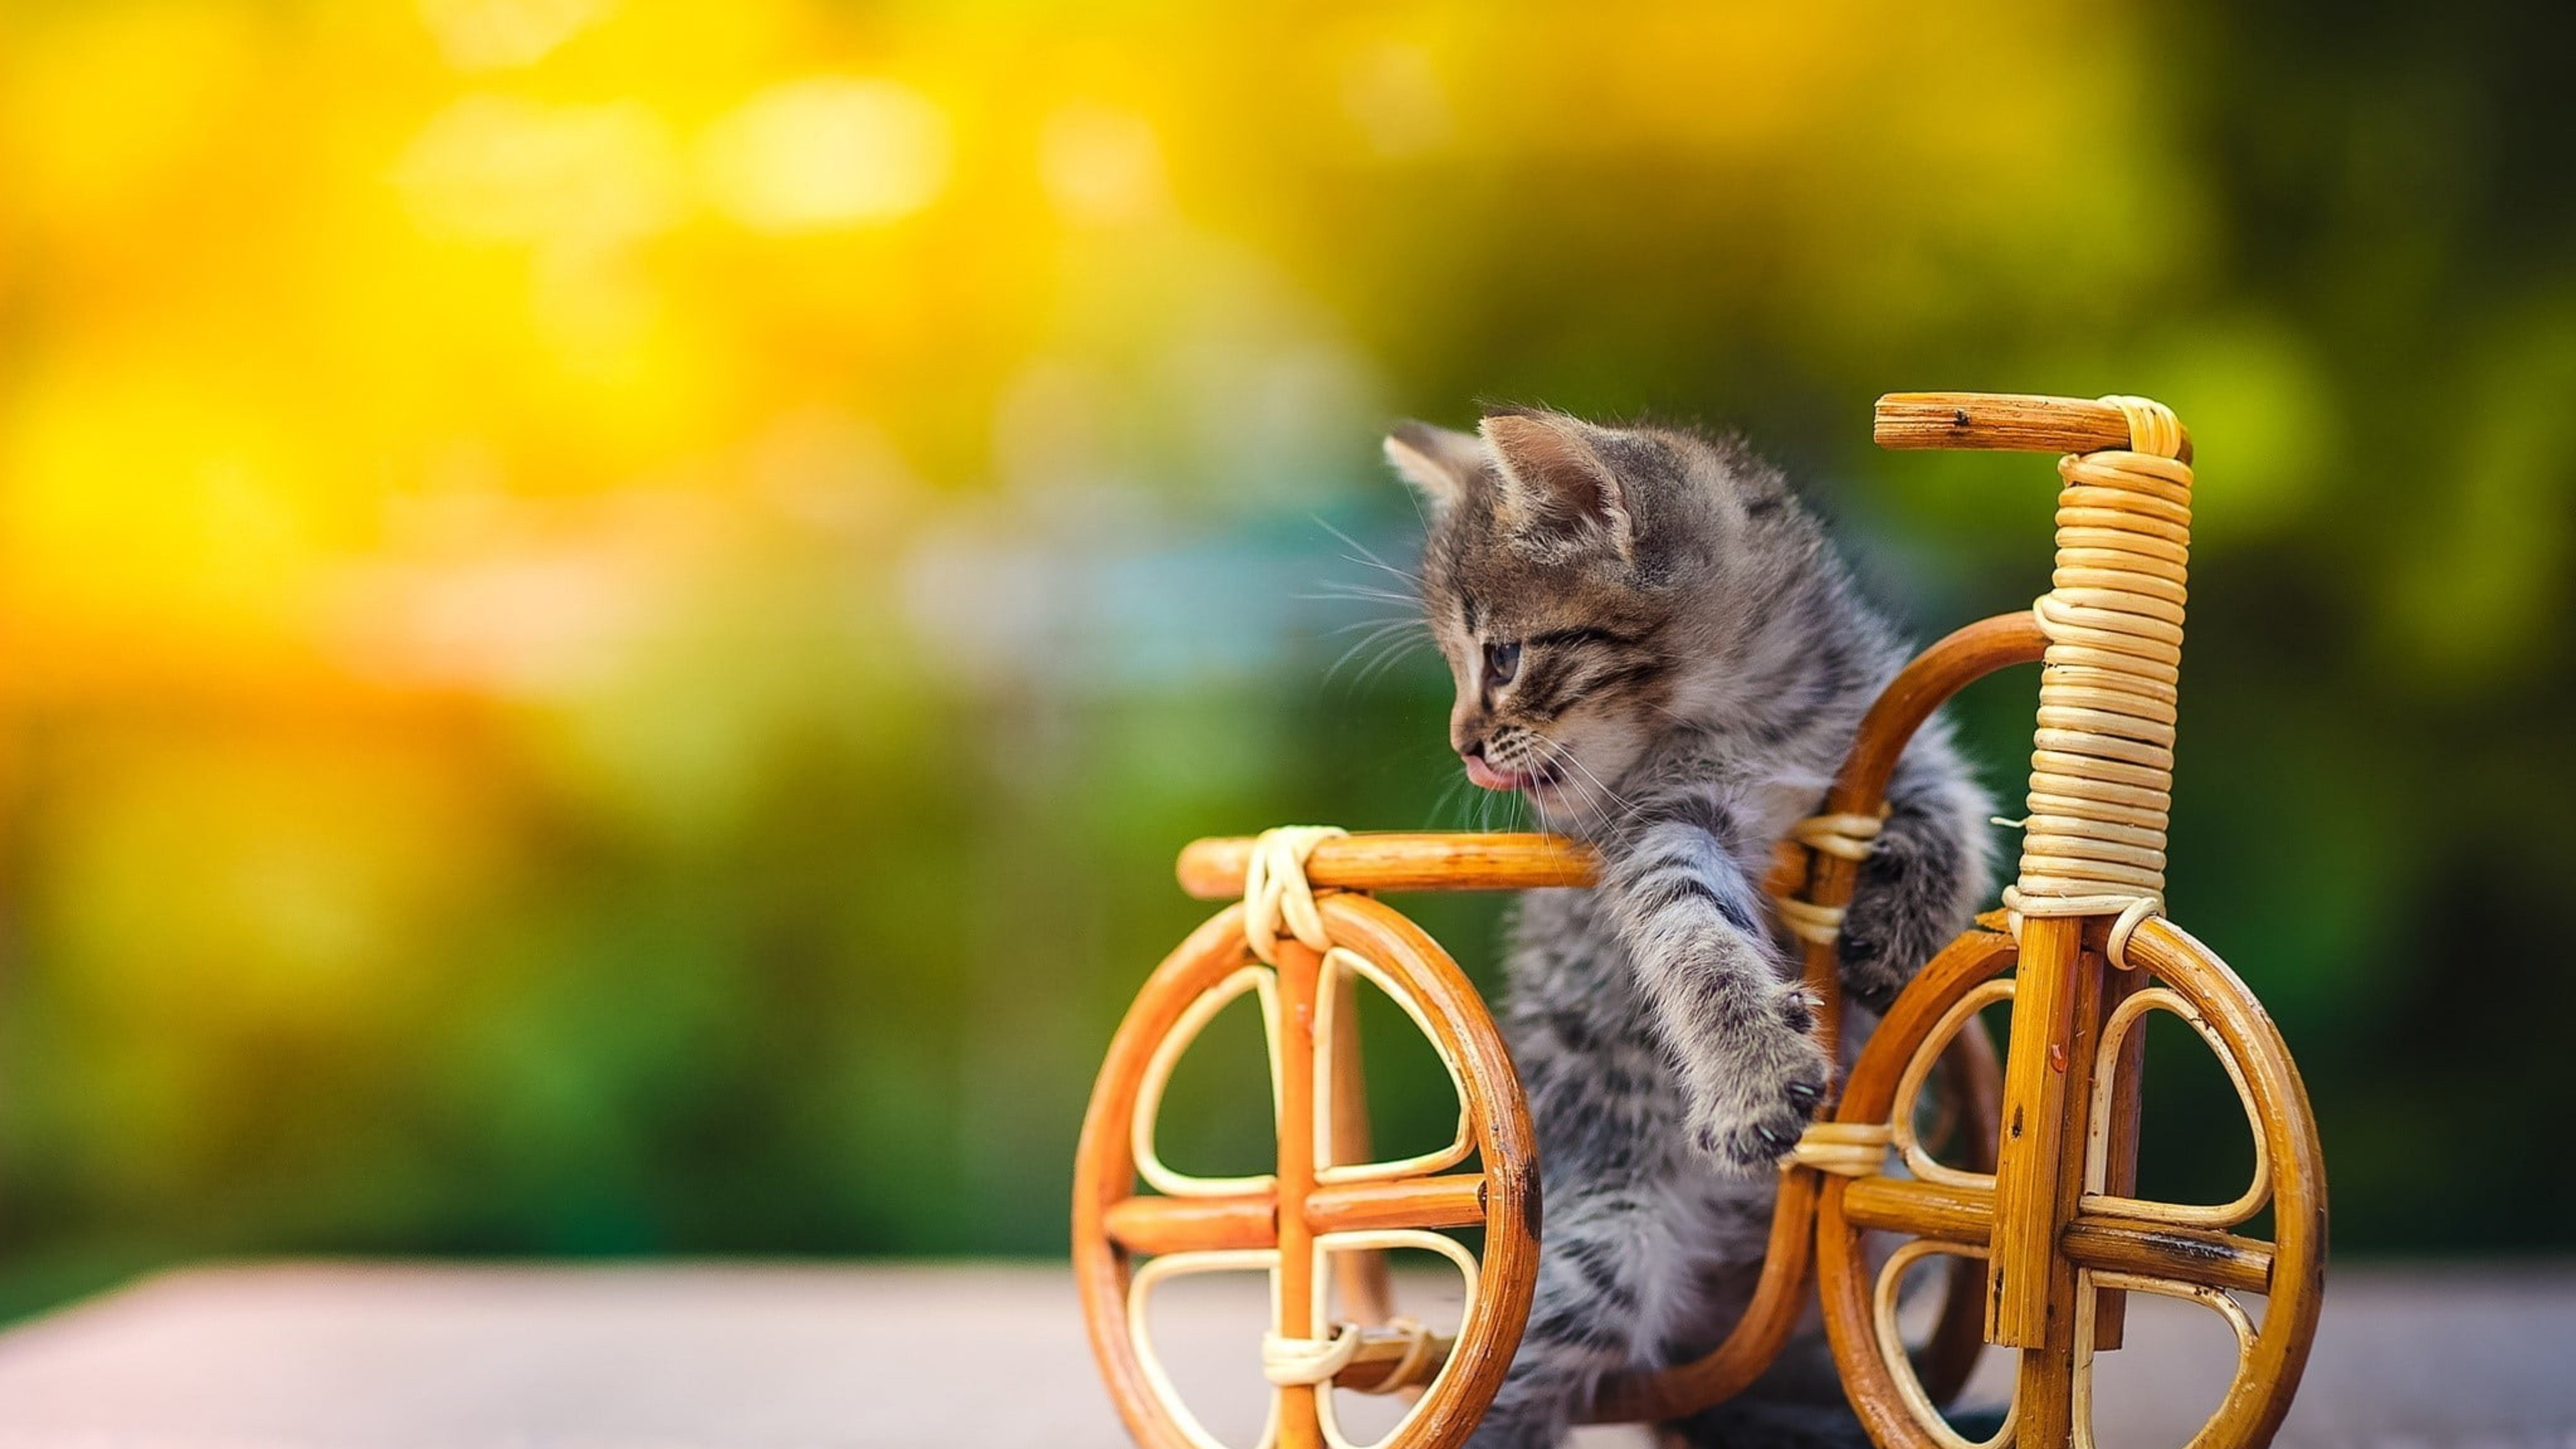 Kitten On Wooden Bicycle 4K Background HD 3840x2160